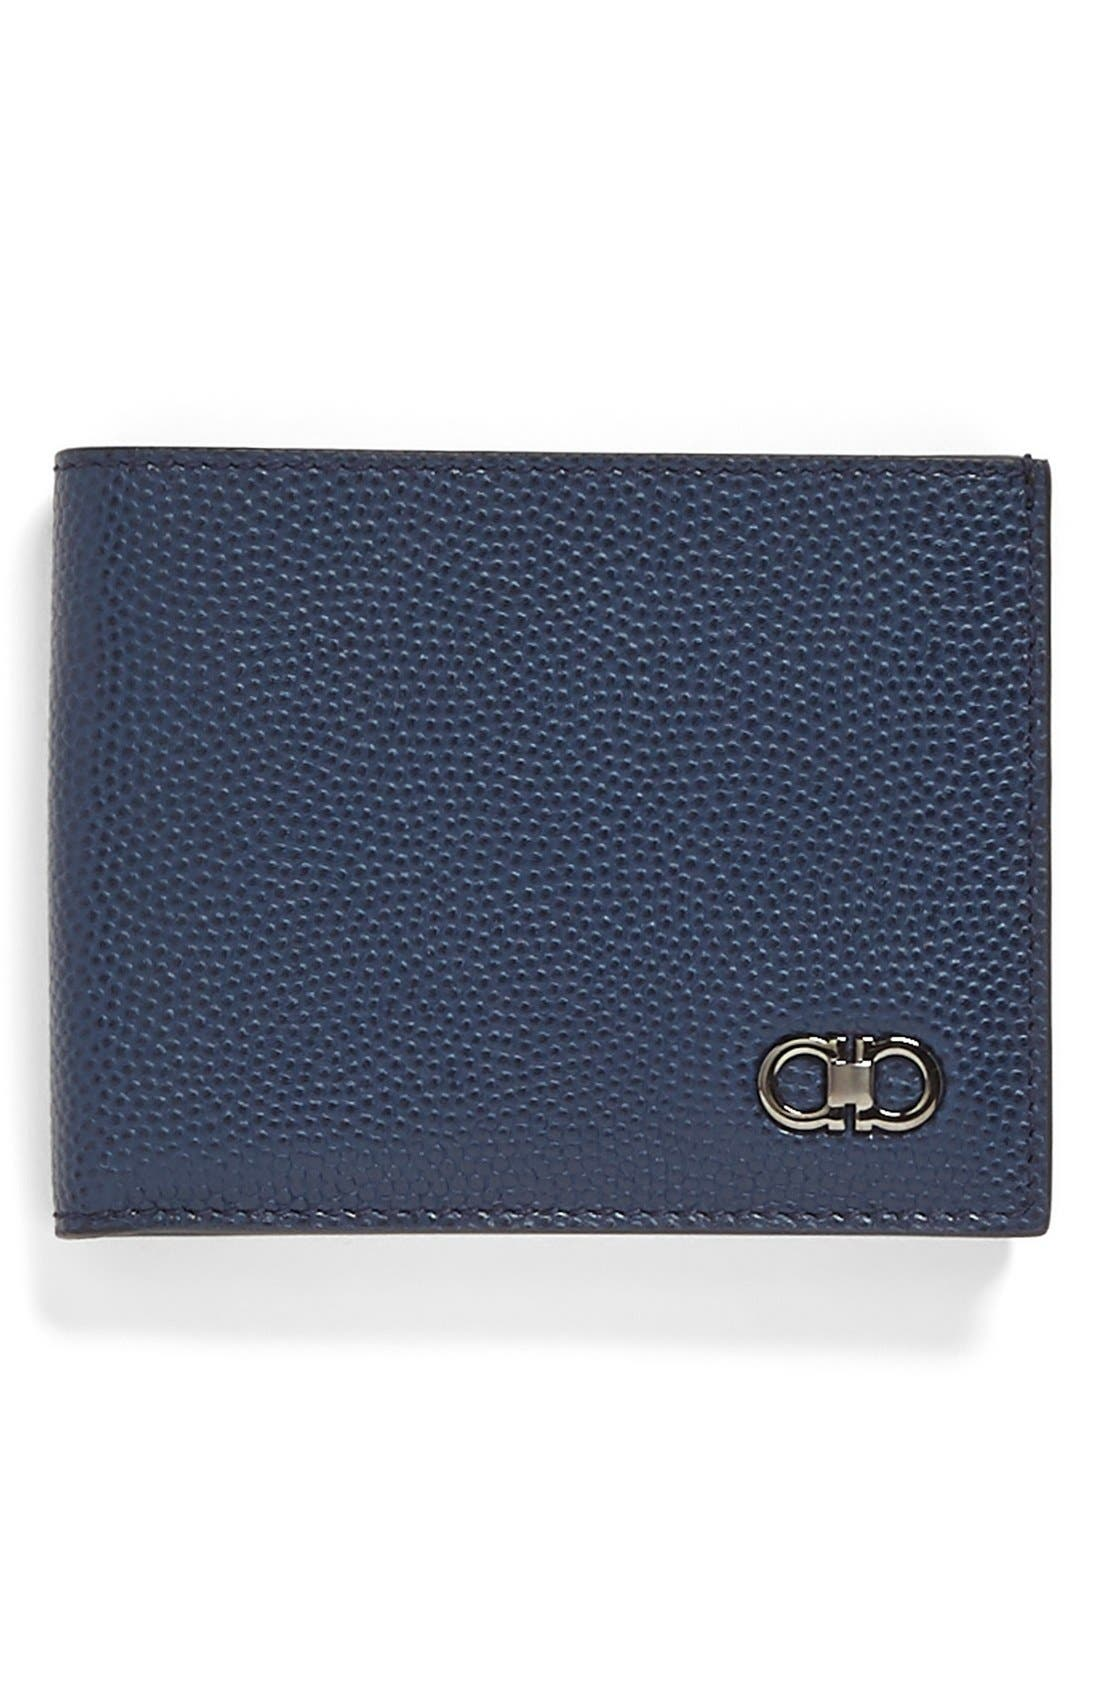 Trifold Wallet,                         Main,                         color,